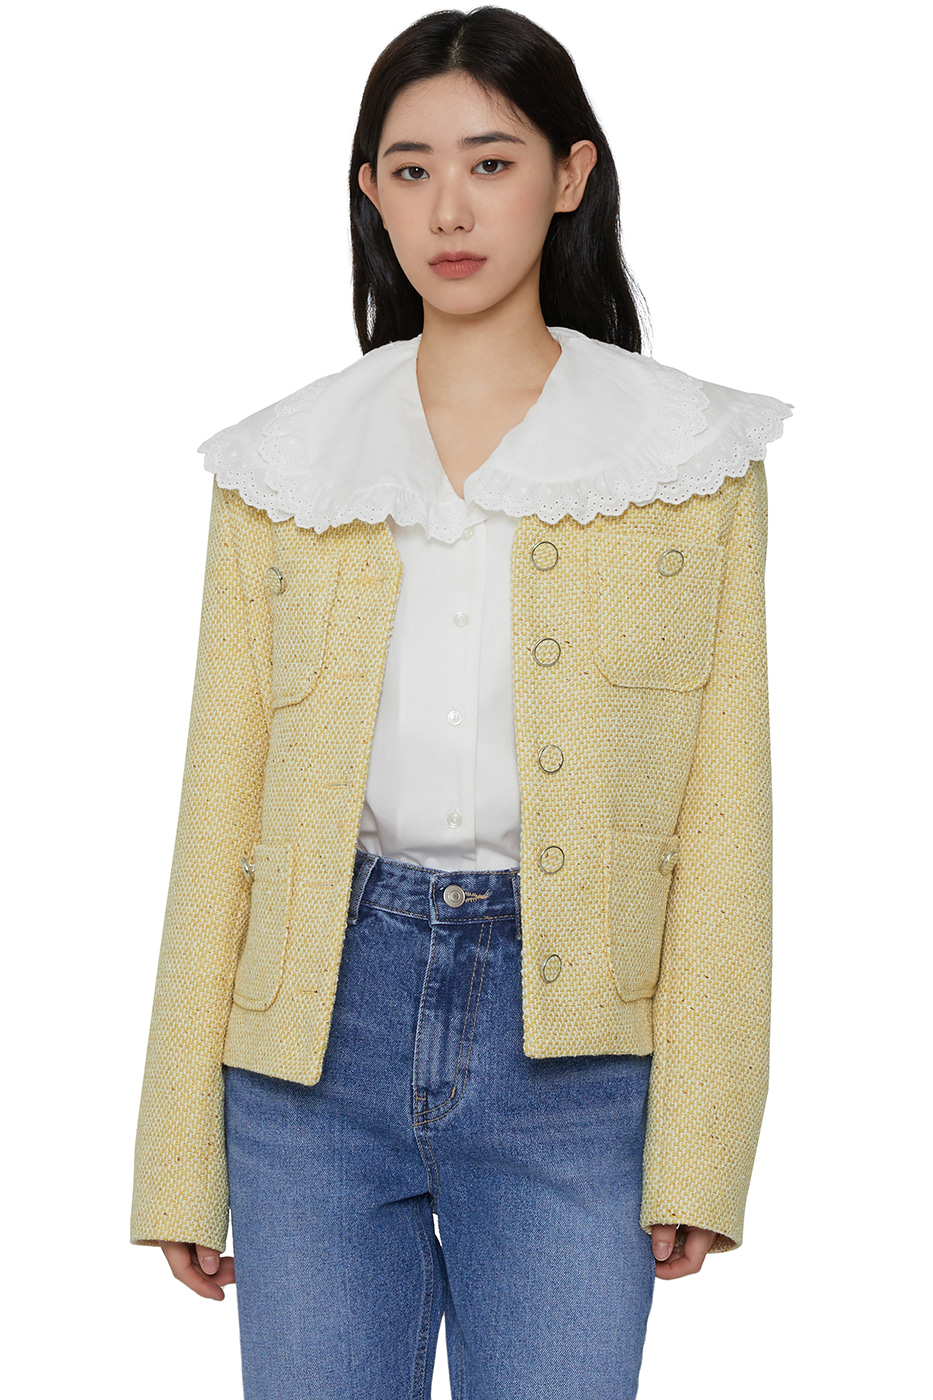 Doubling collar blouse